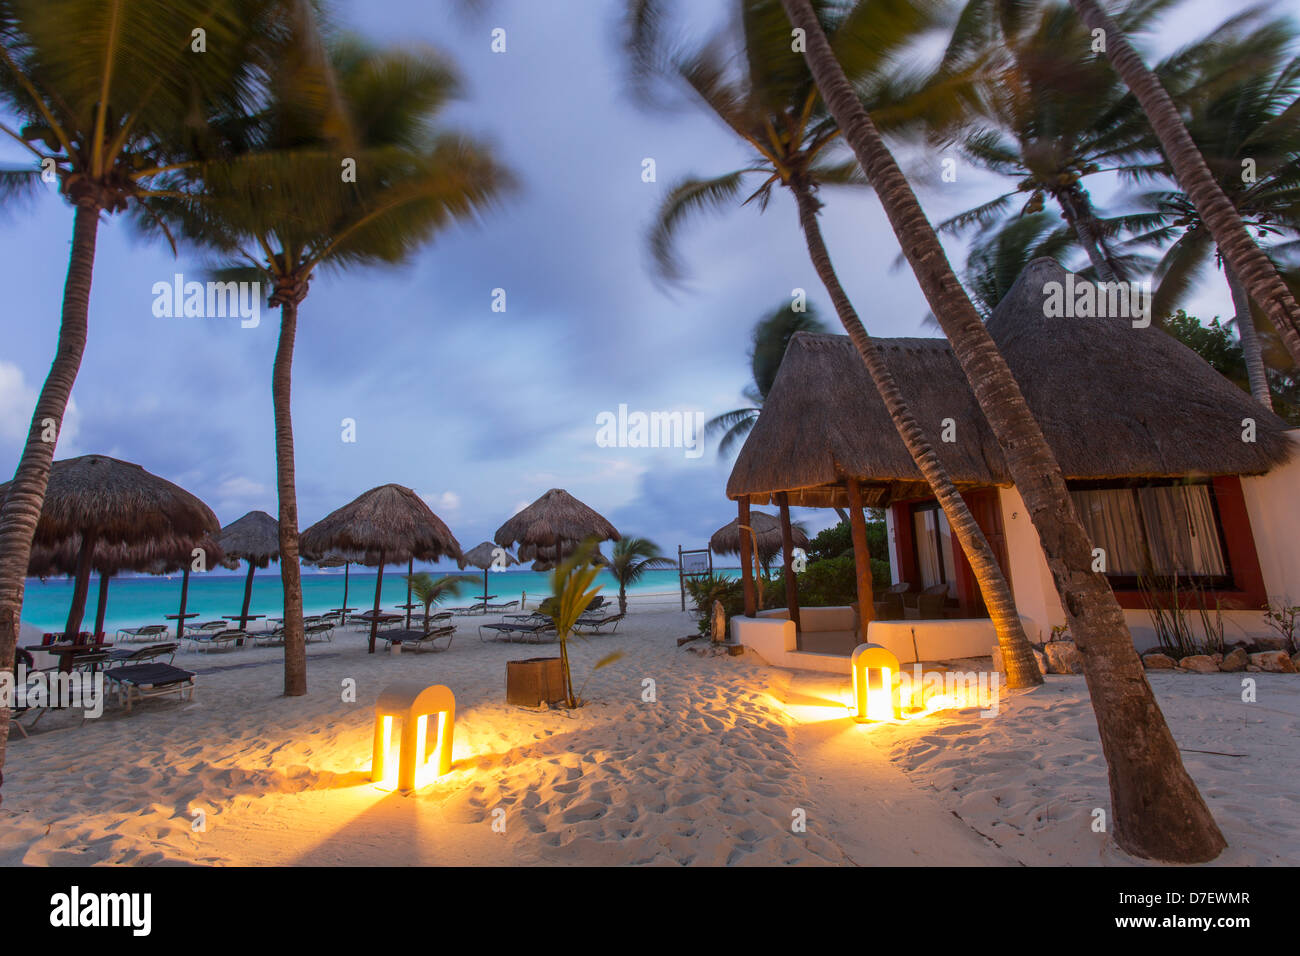 cabana style accommodation on the beach surrounded by palm trees at dawn - Stock Image